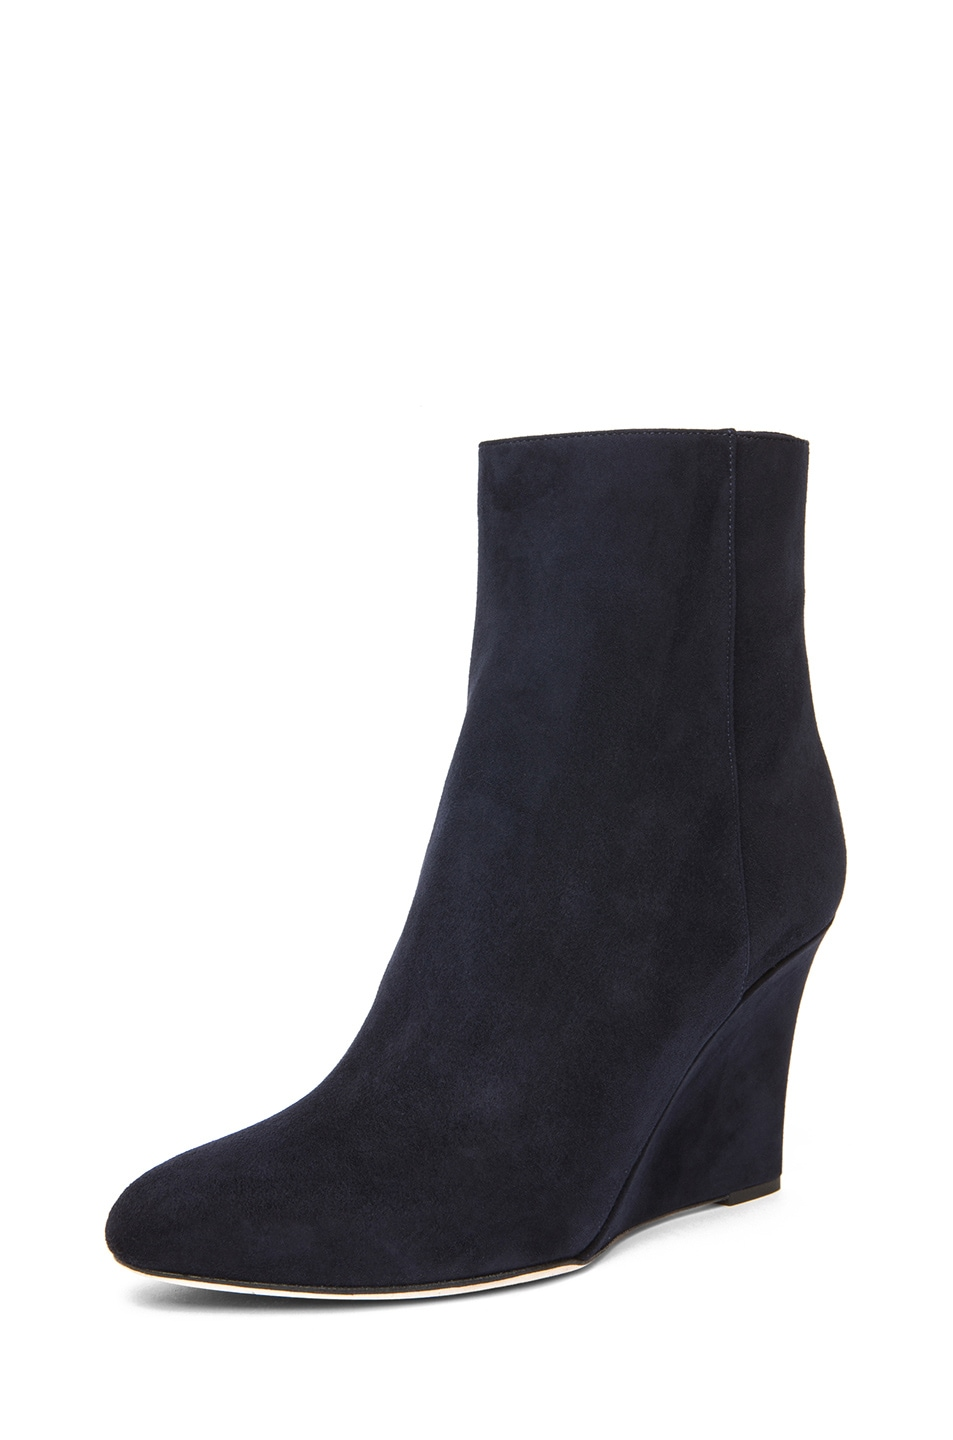 Image 2 of Jimmy Choo Mayor Suede 85mm Wedge Ankle Boot in Navy